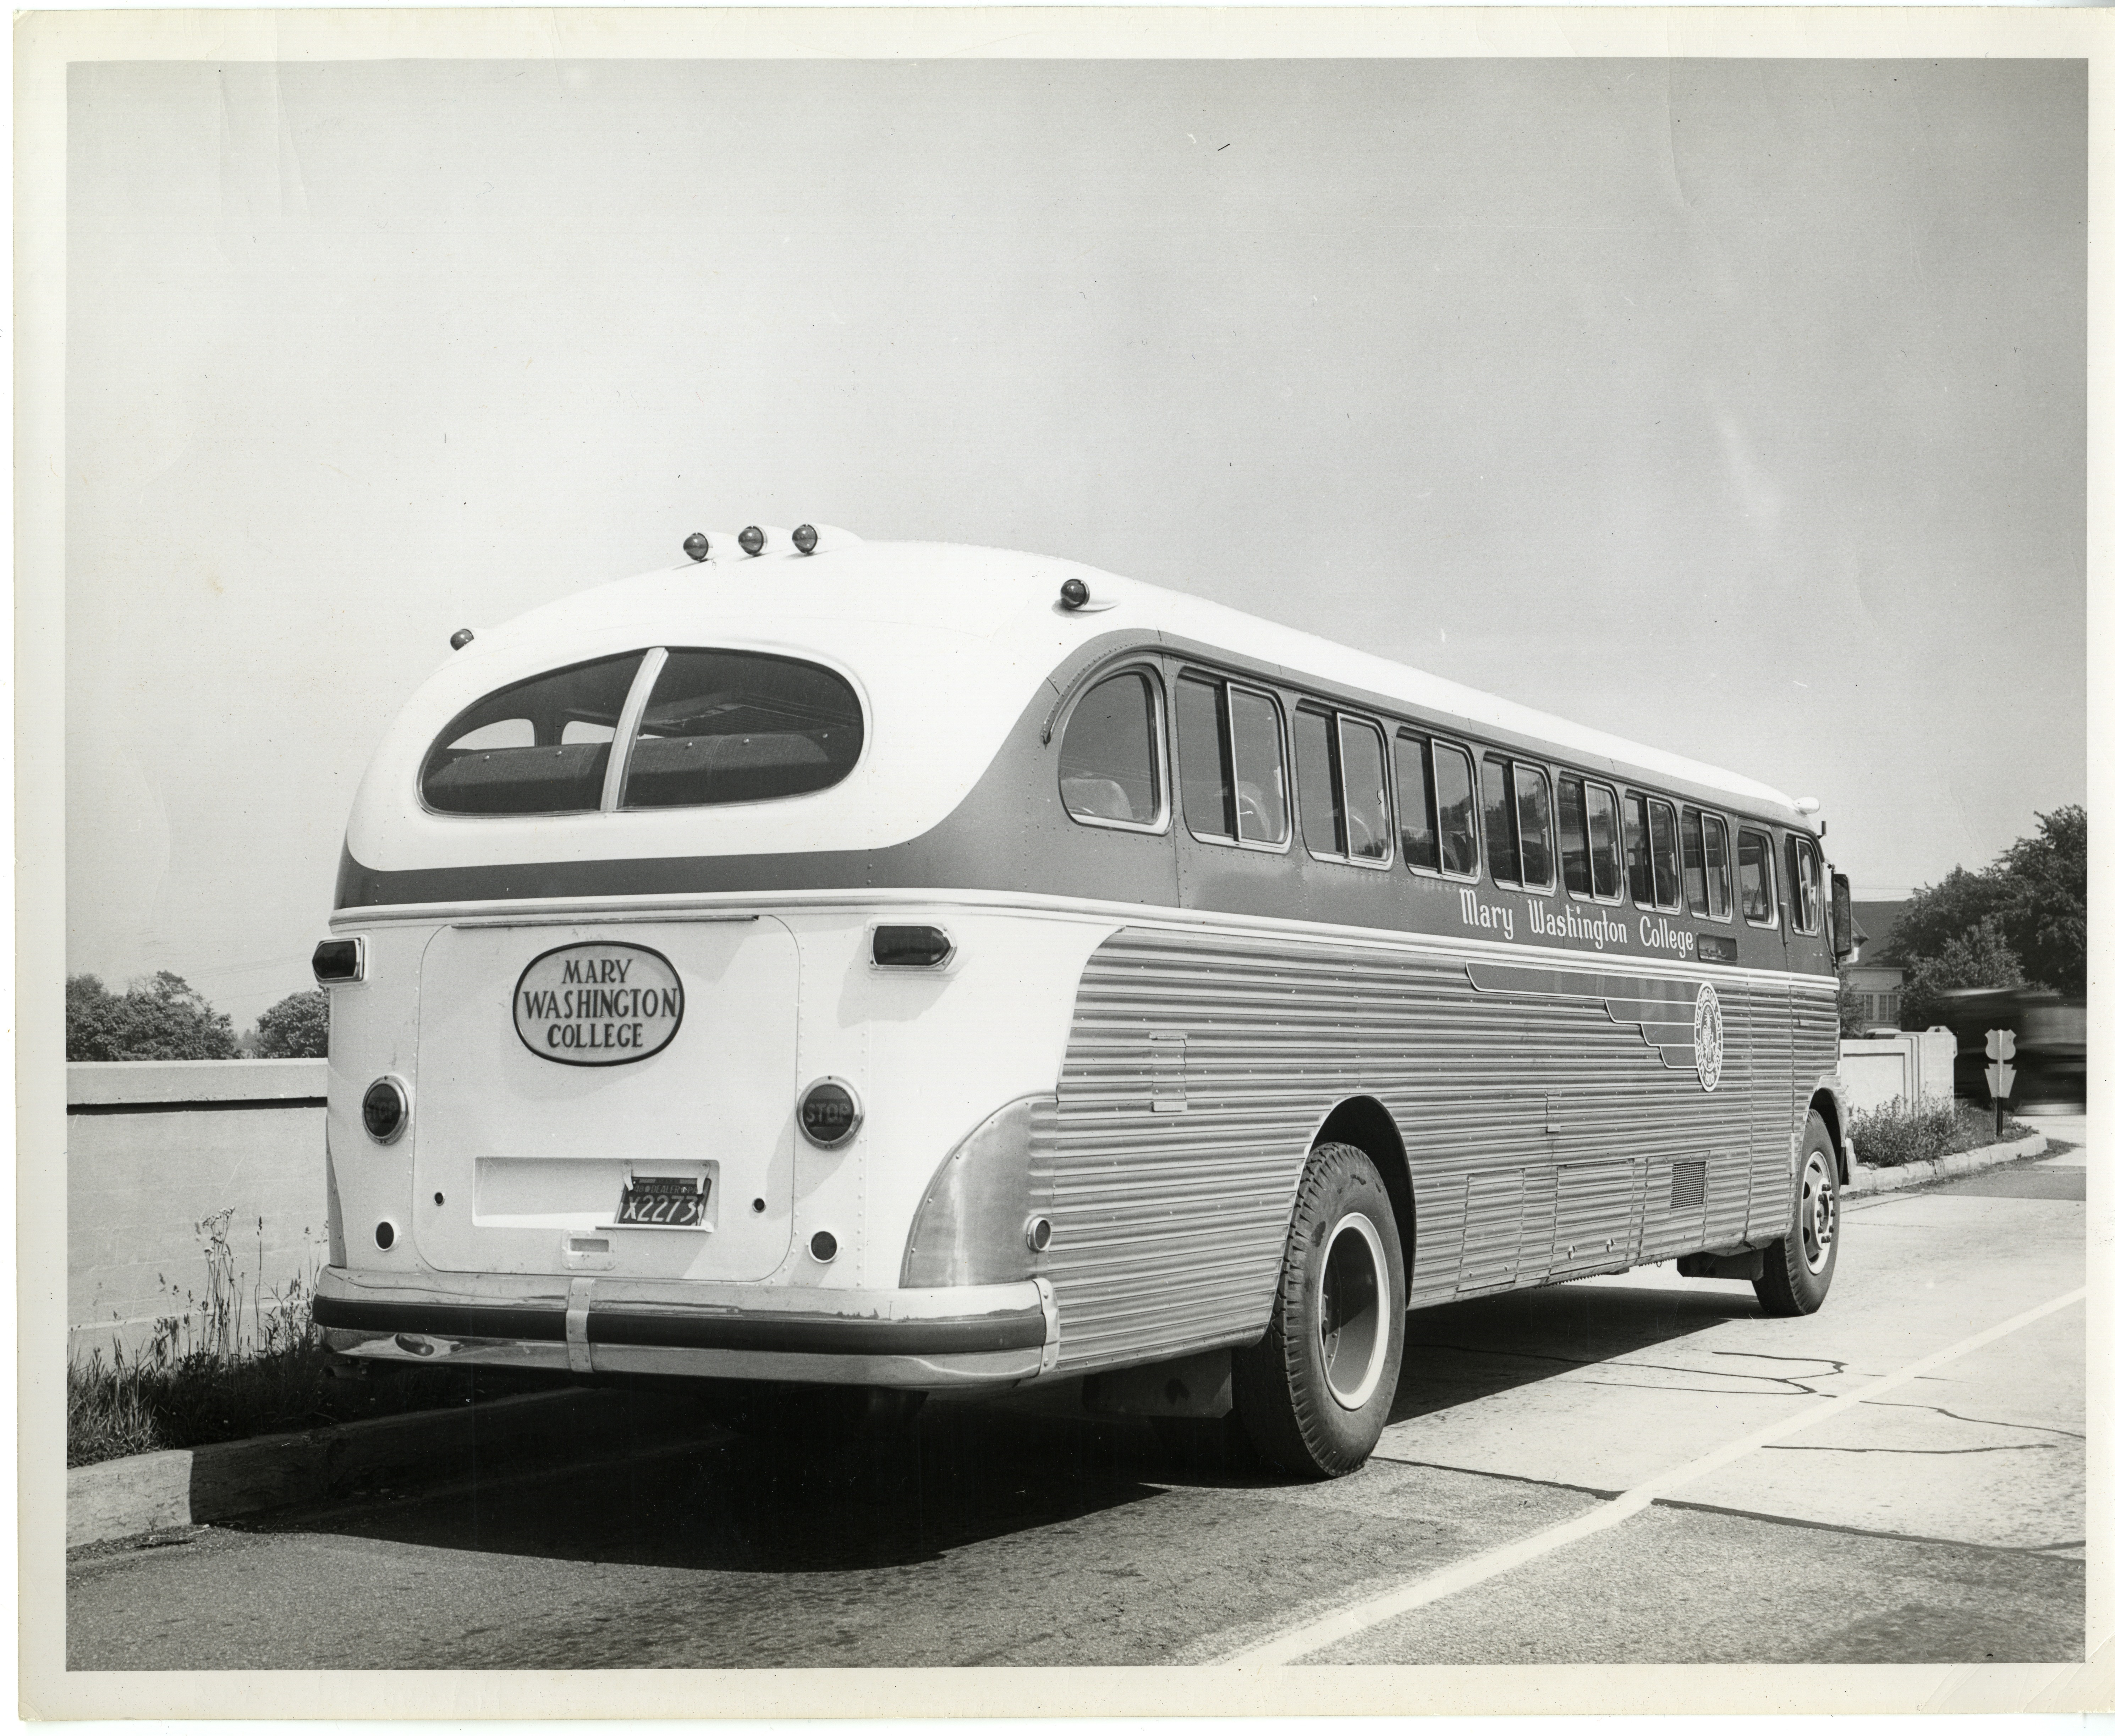 """Black and white image of a 1950s-era bus. The side and rear of the bus say """"Mary Washington College""""."""